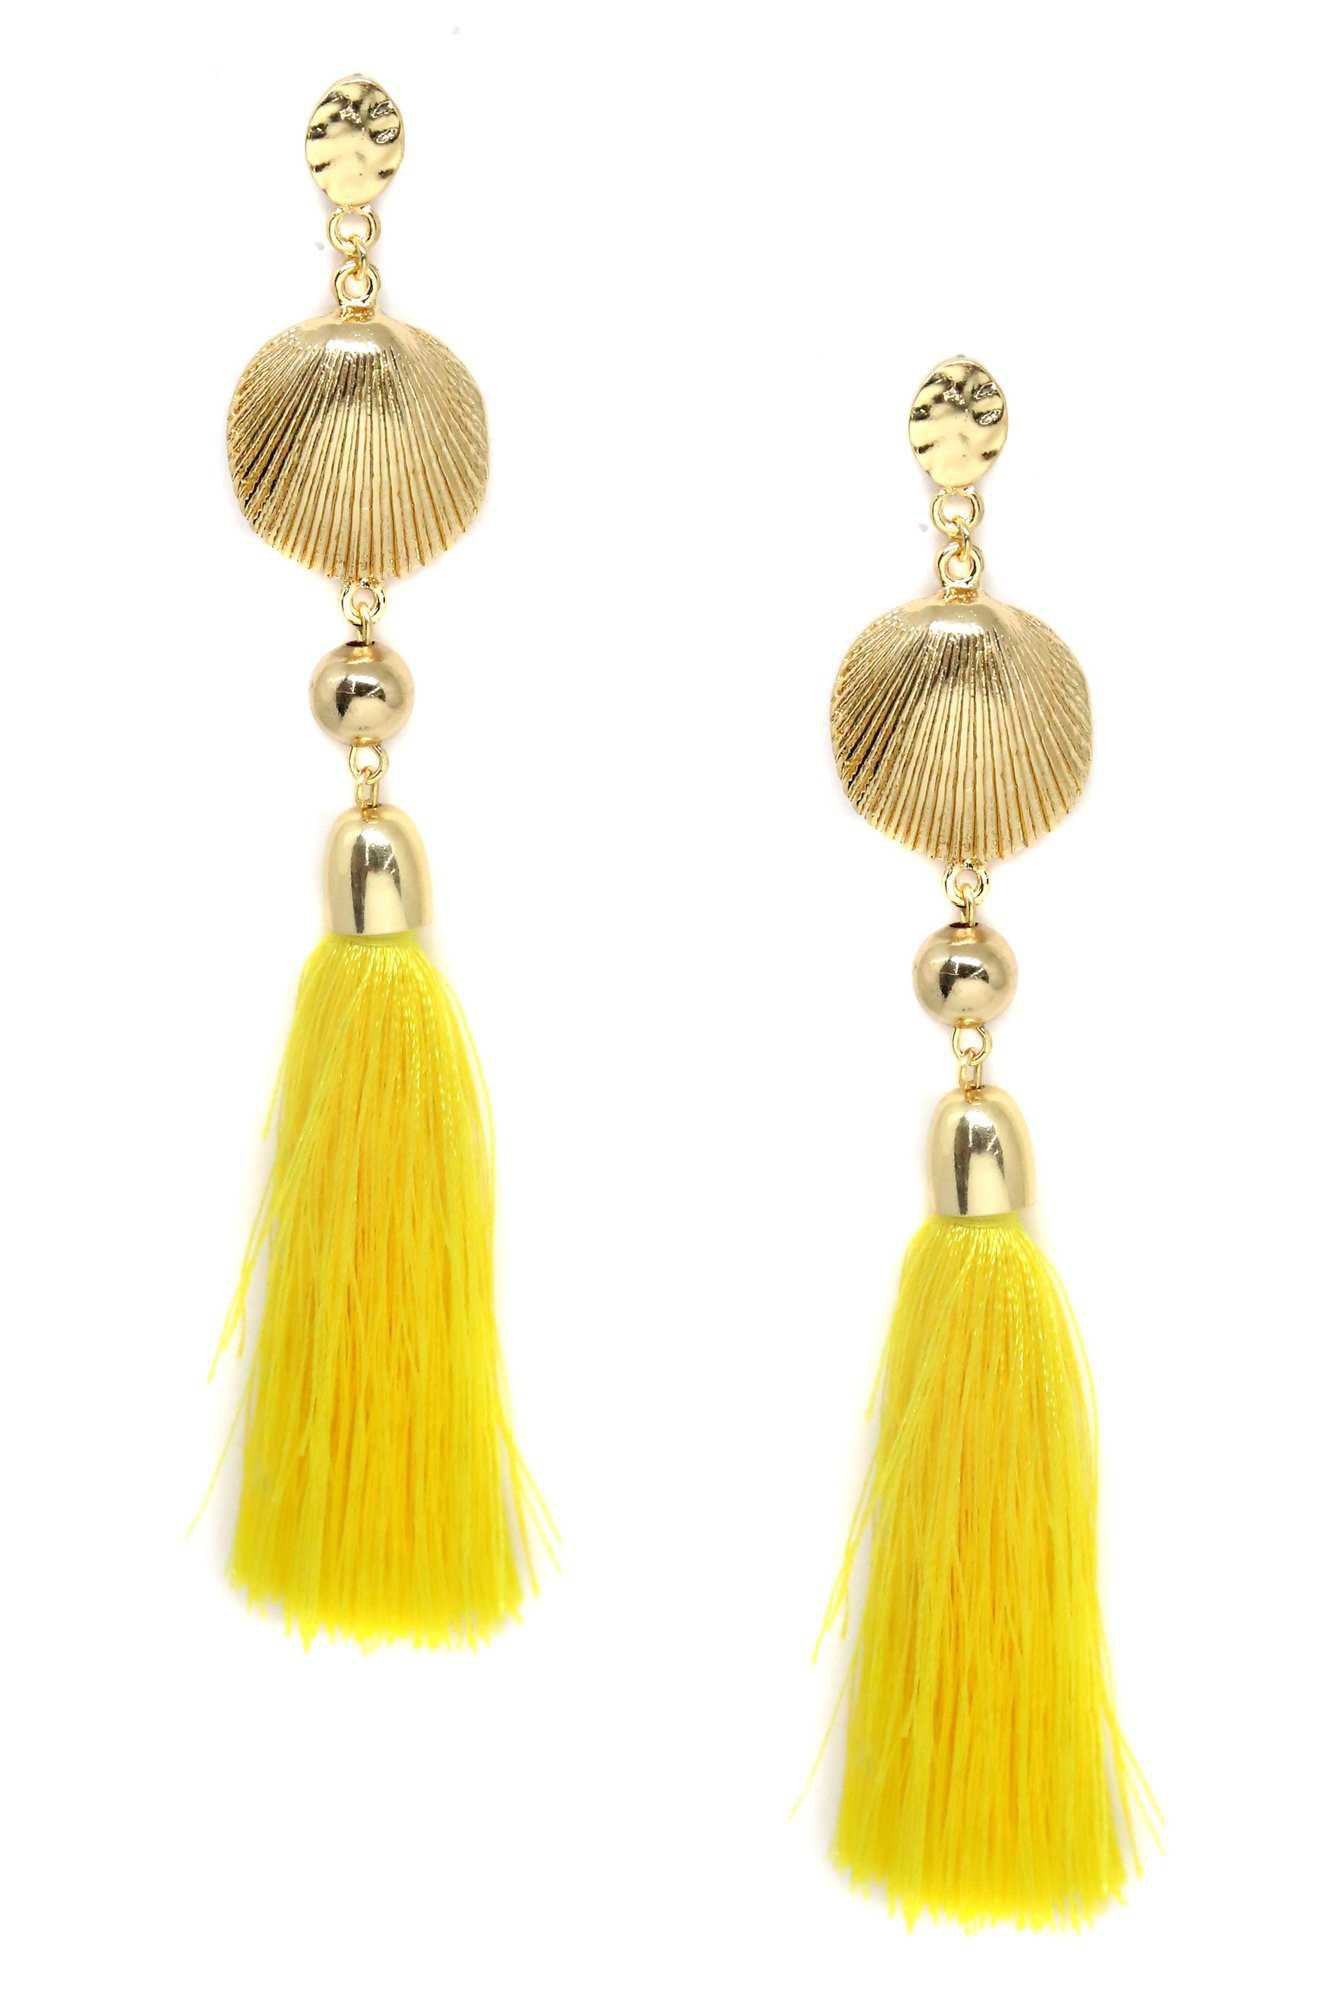 earning with yellow tassels